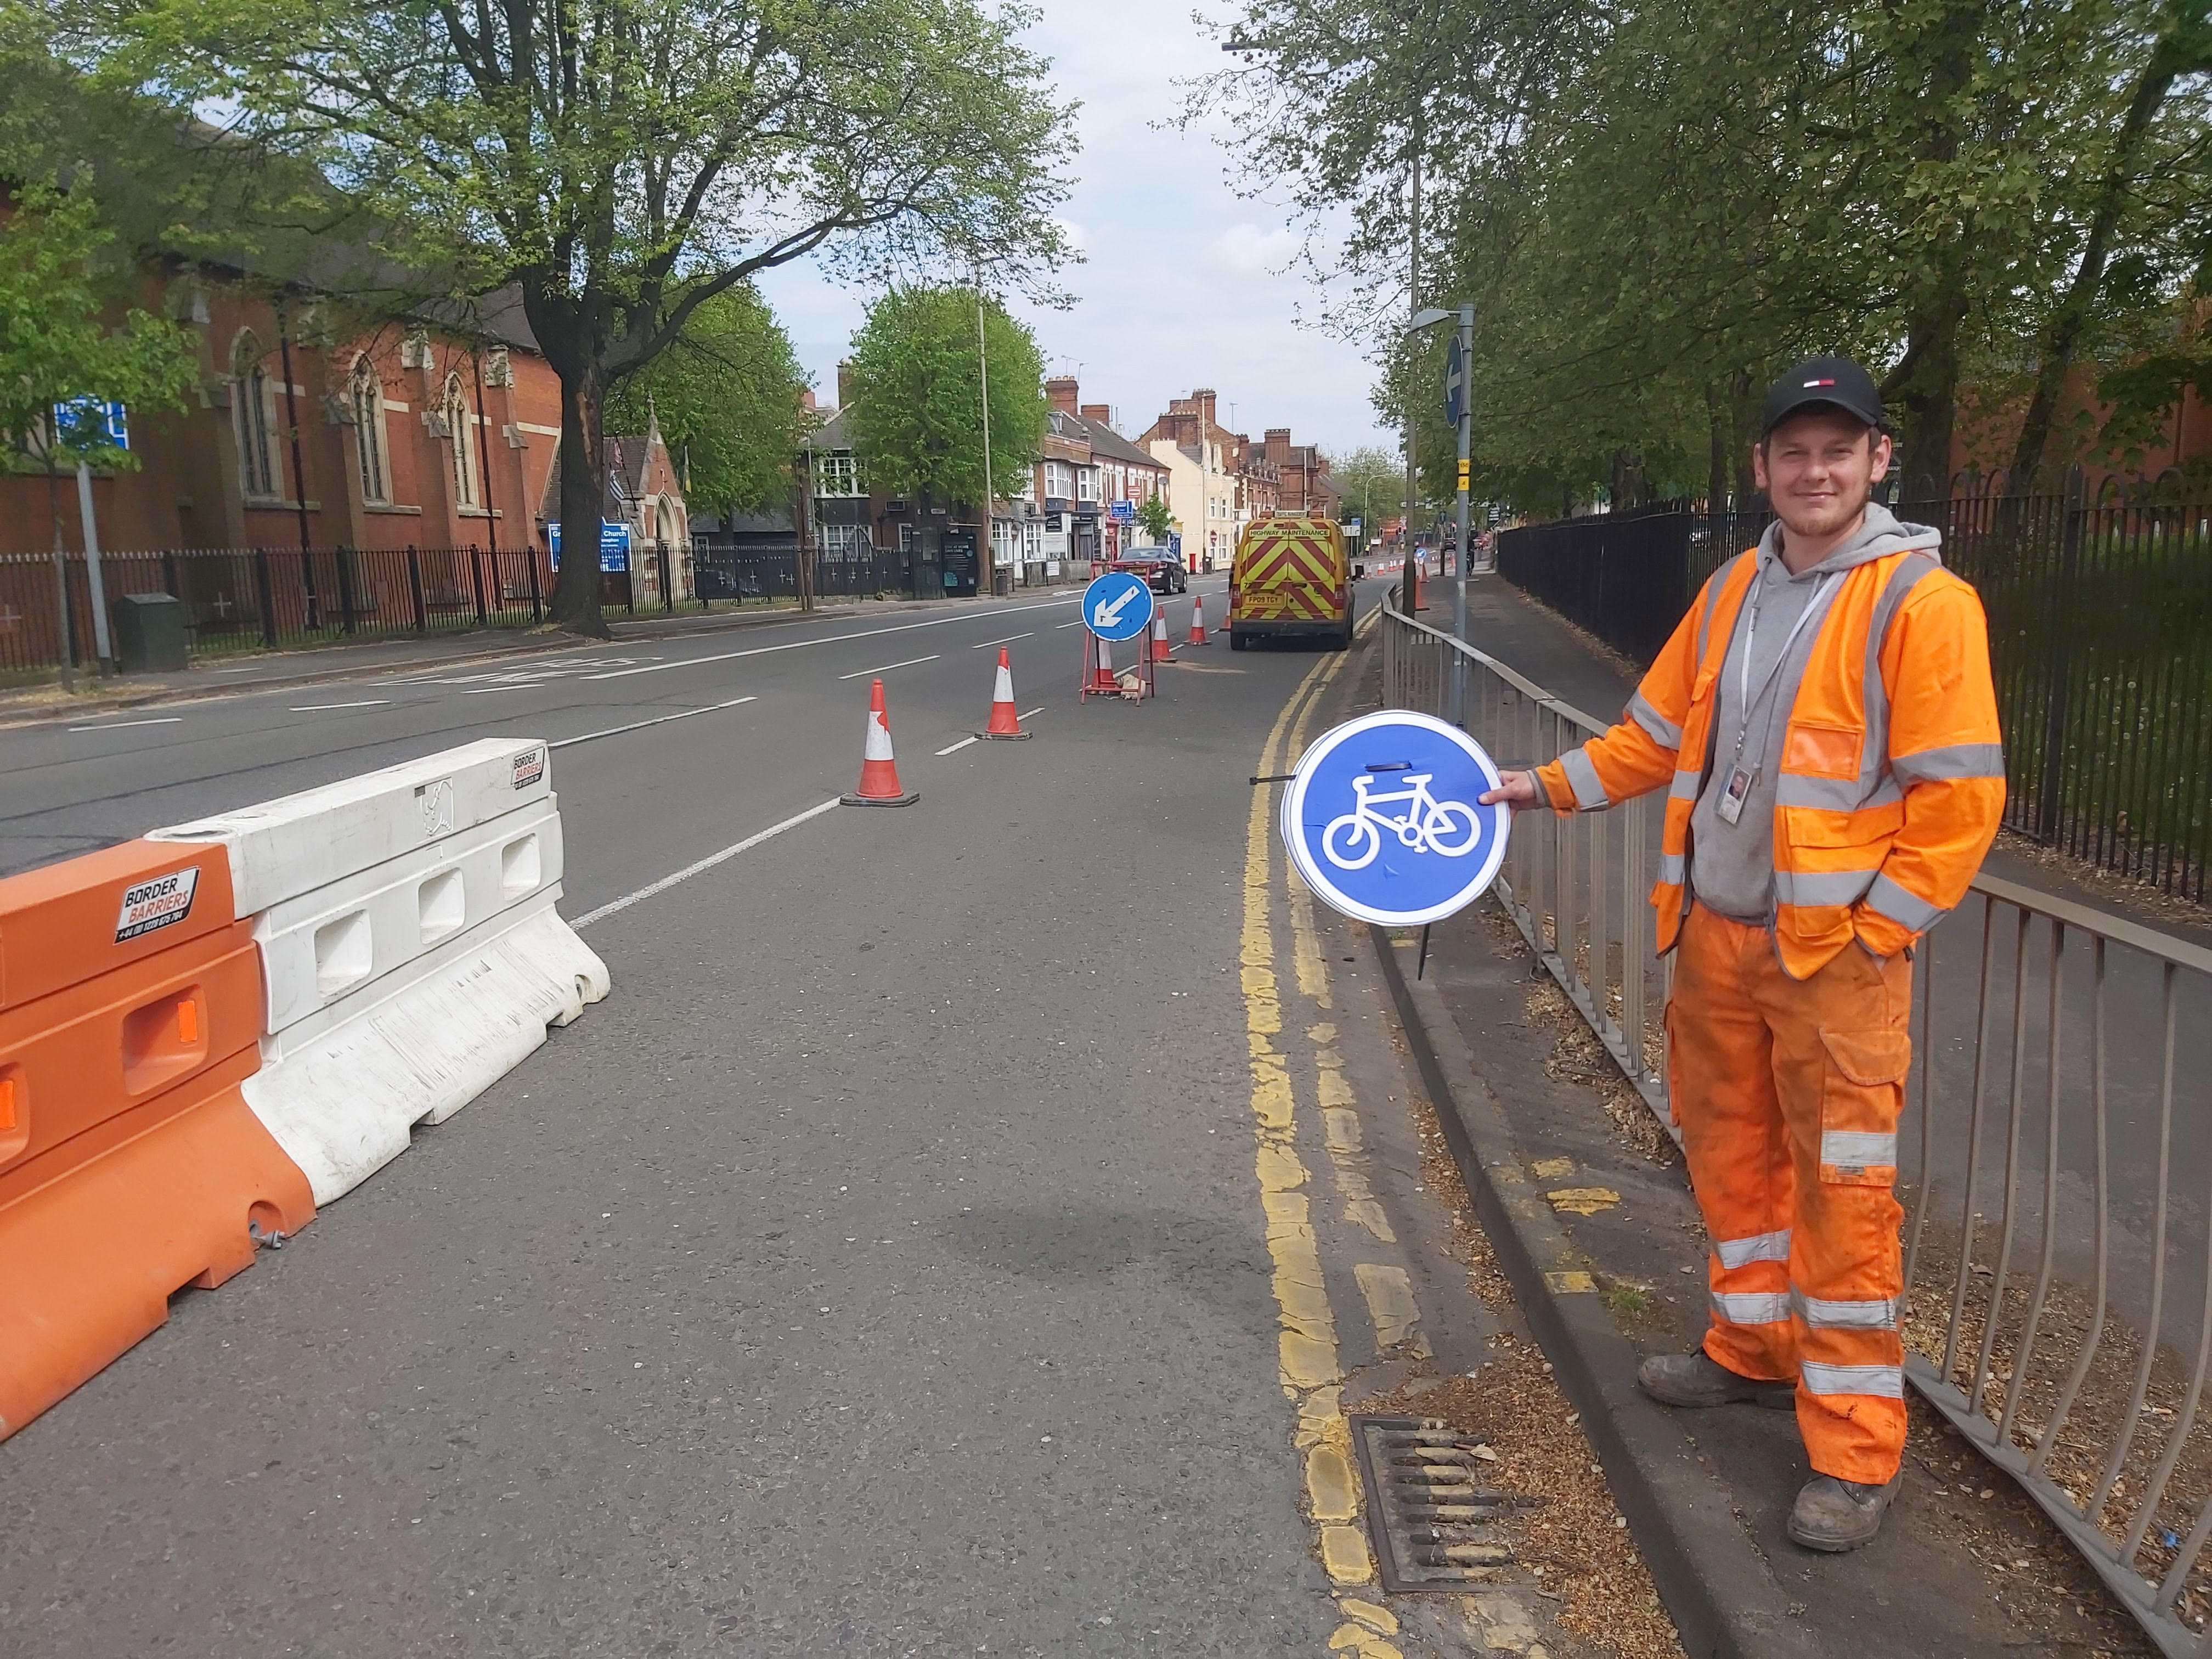 Pop-Up Cycle lane in Leicester for key workers